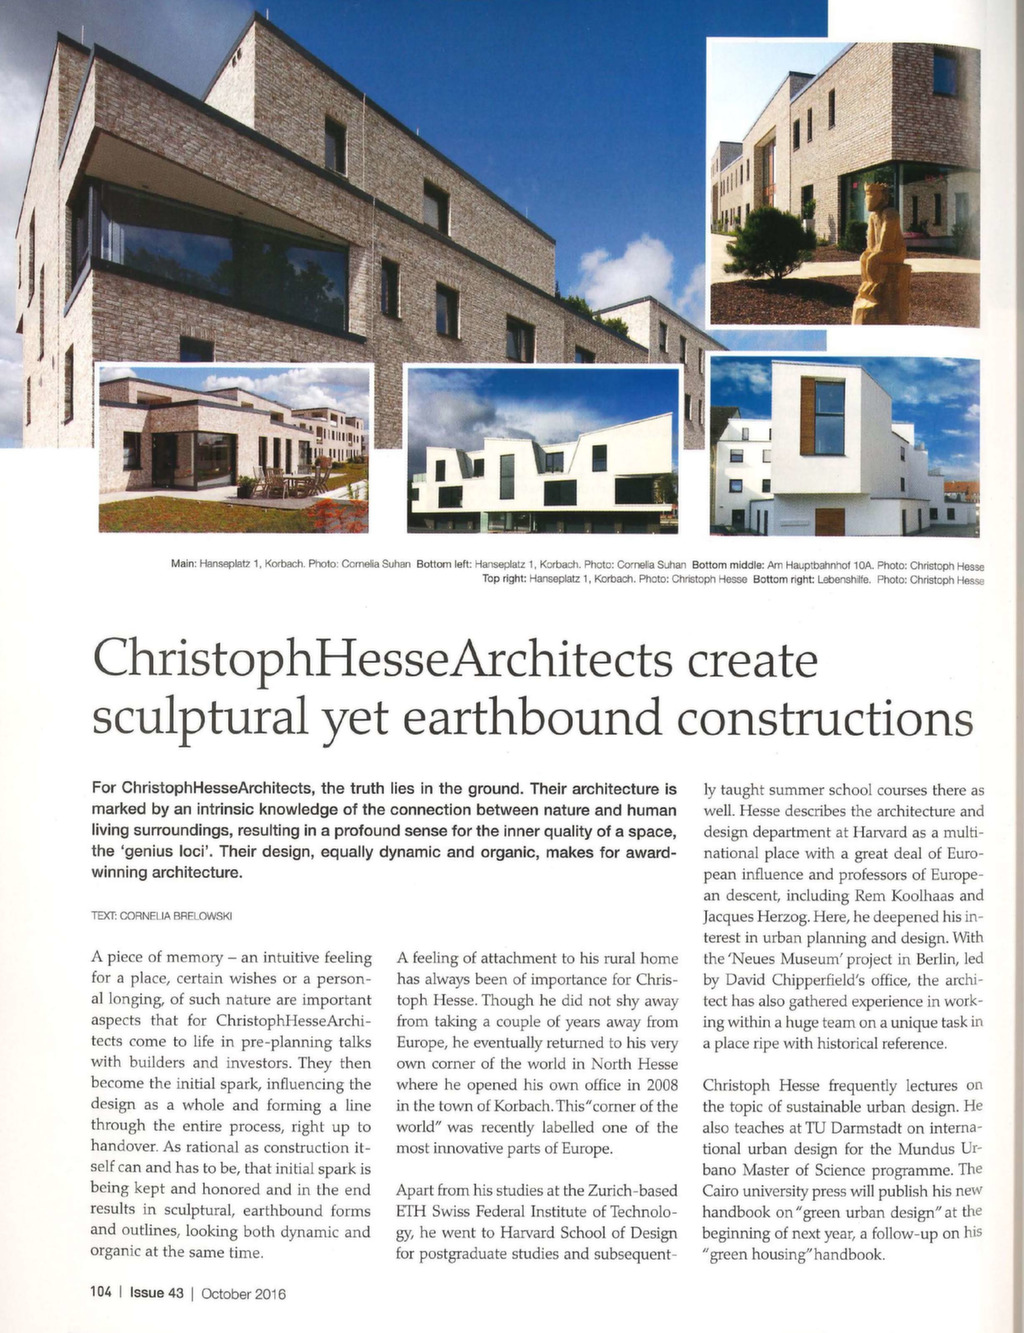 Discover Germany – Christoph Hesse Architects